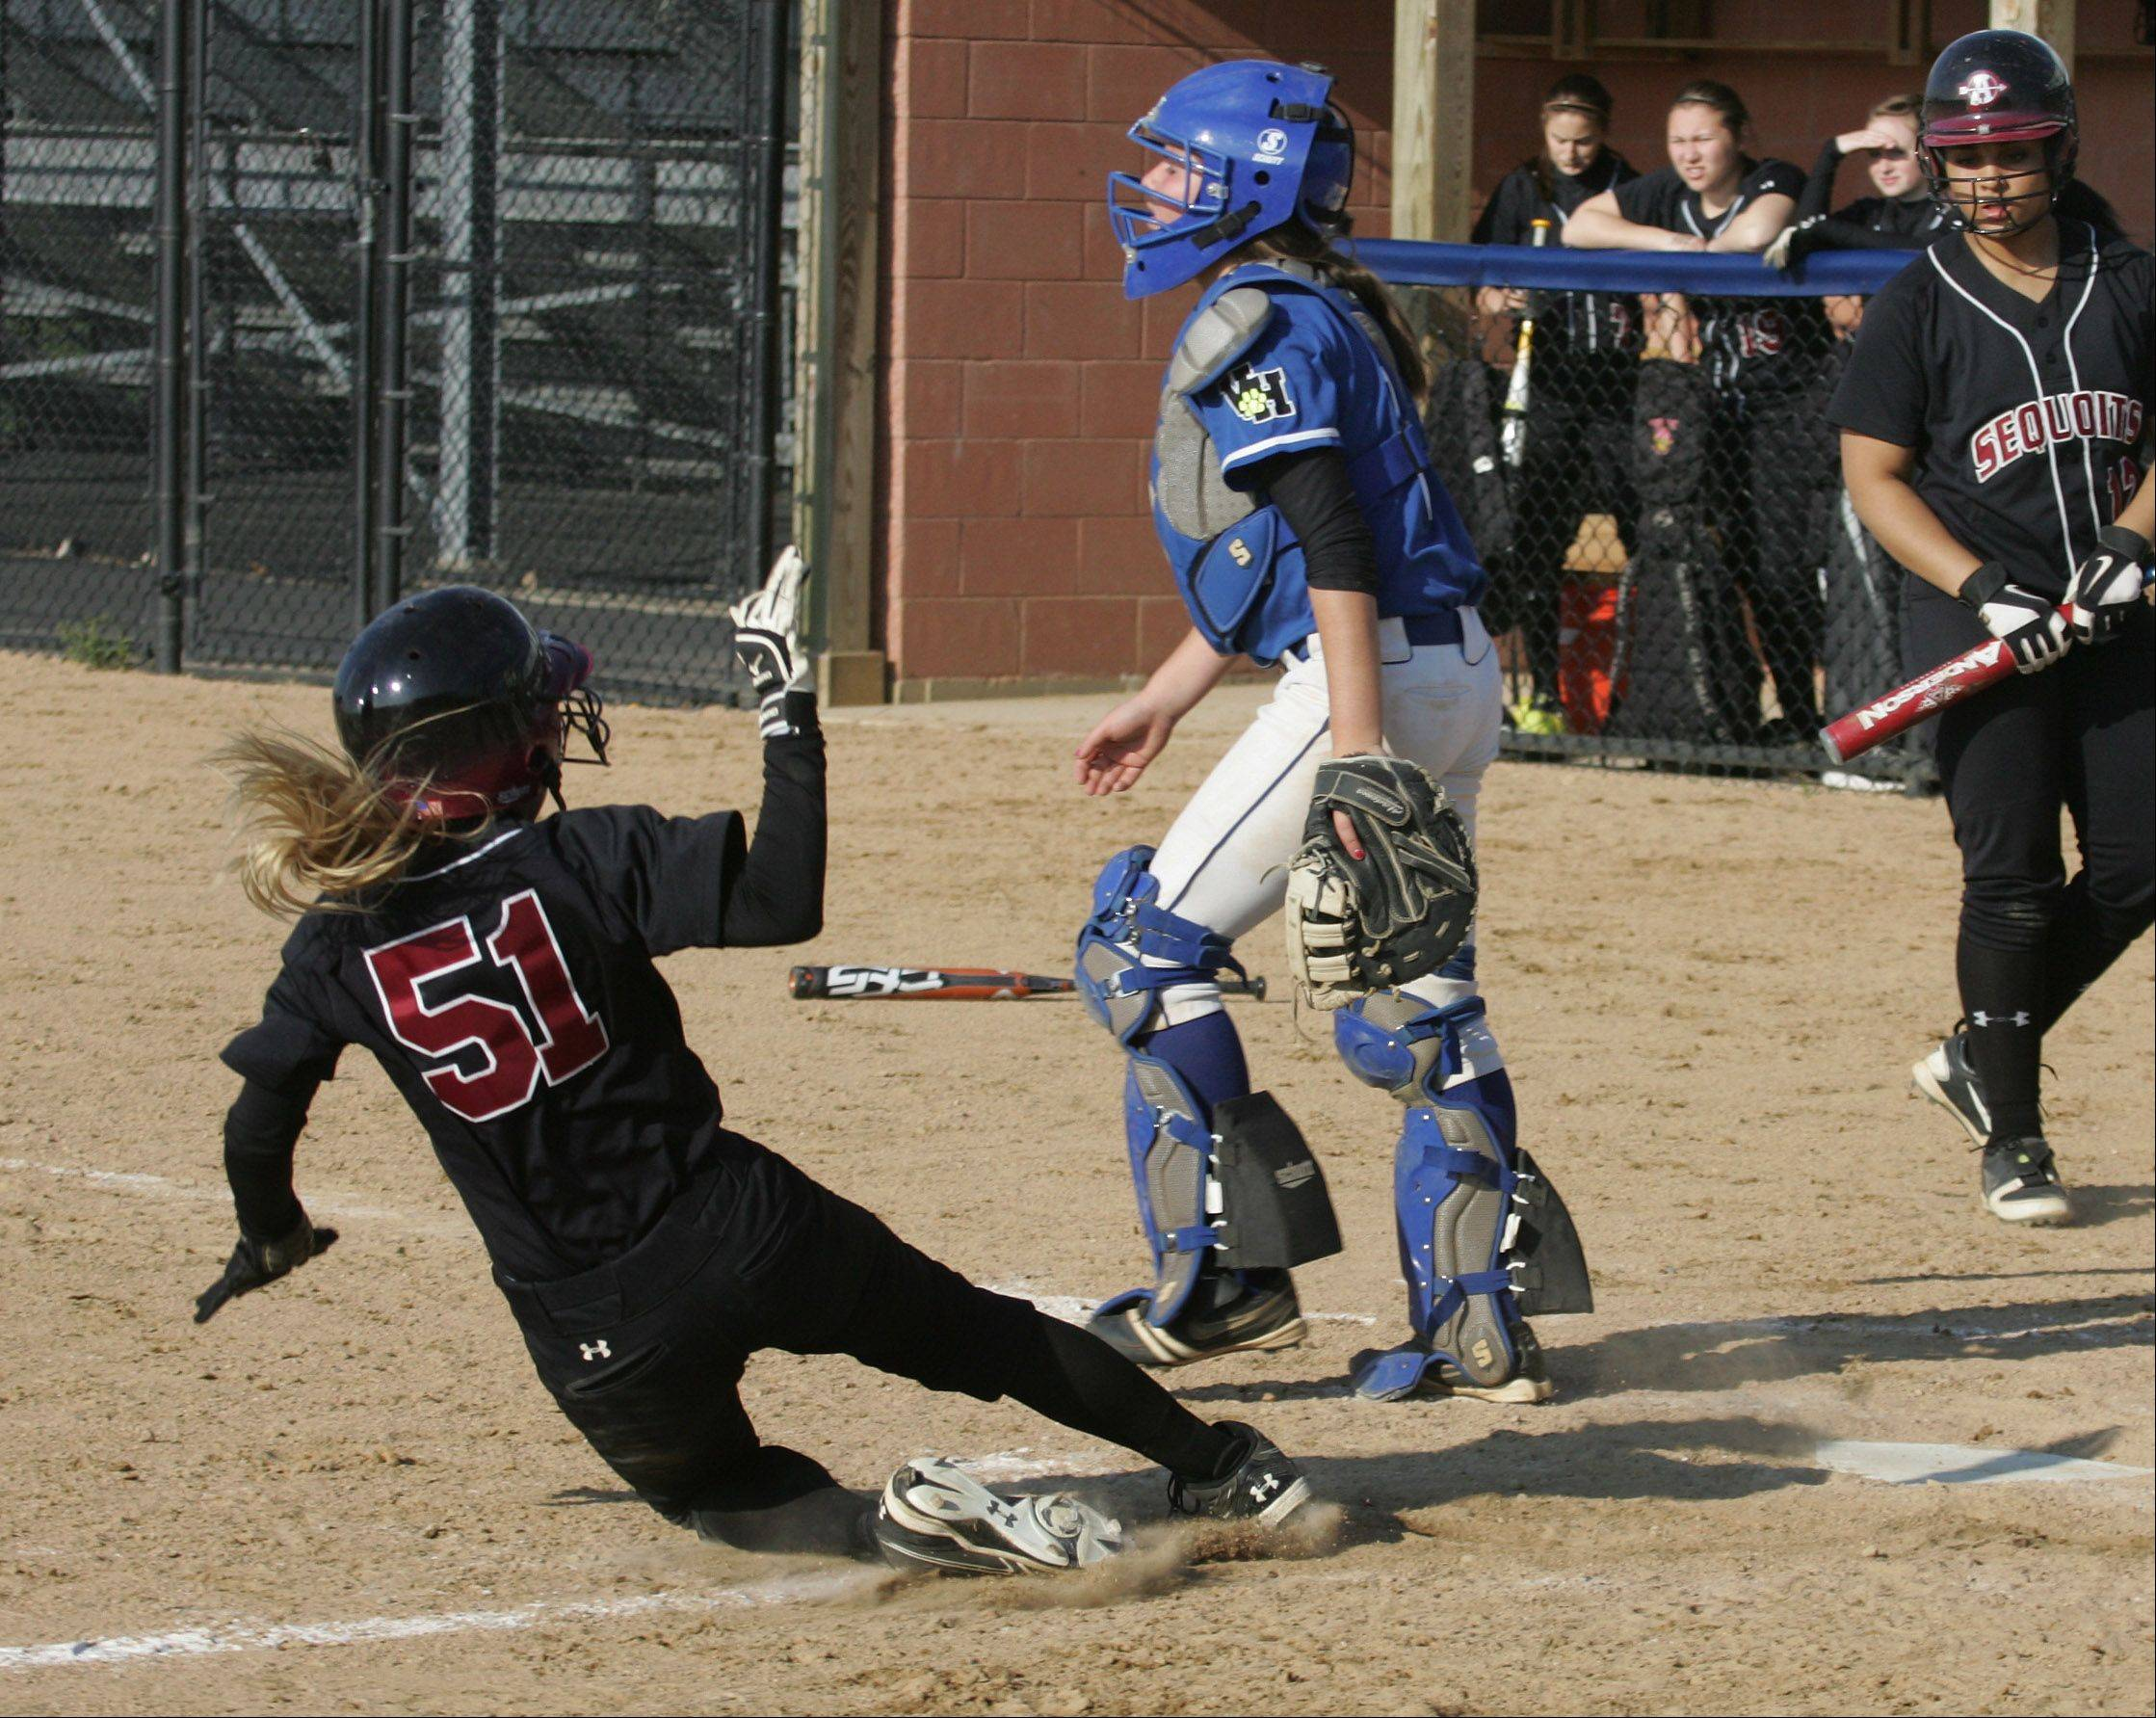 Antioch's Hannah Skoog slides into home in the third, inning scoring her second run of the game Tuesday as Vernon Hills catcher Sami Freibrun awaits the throw.